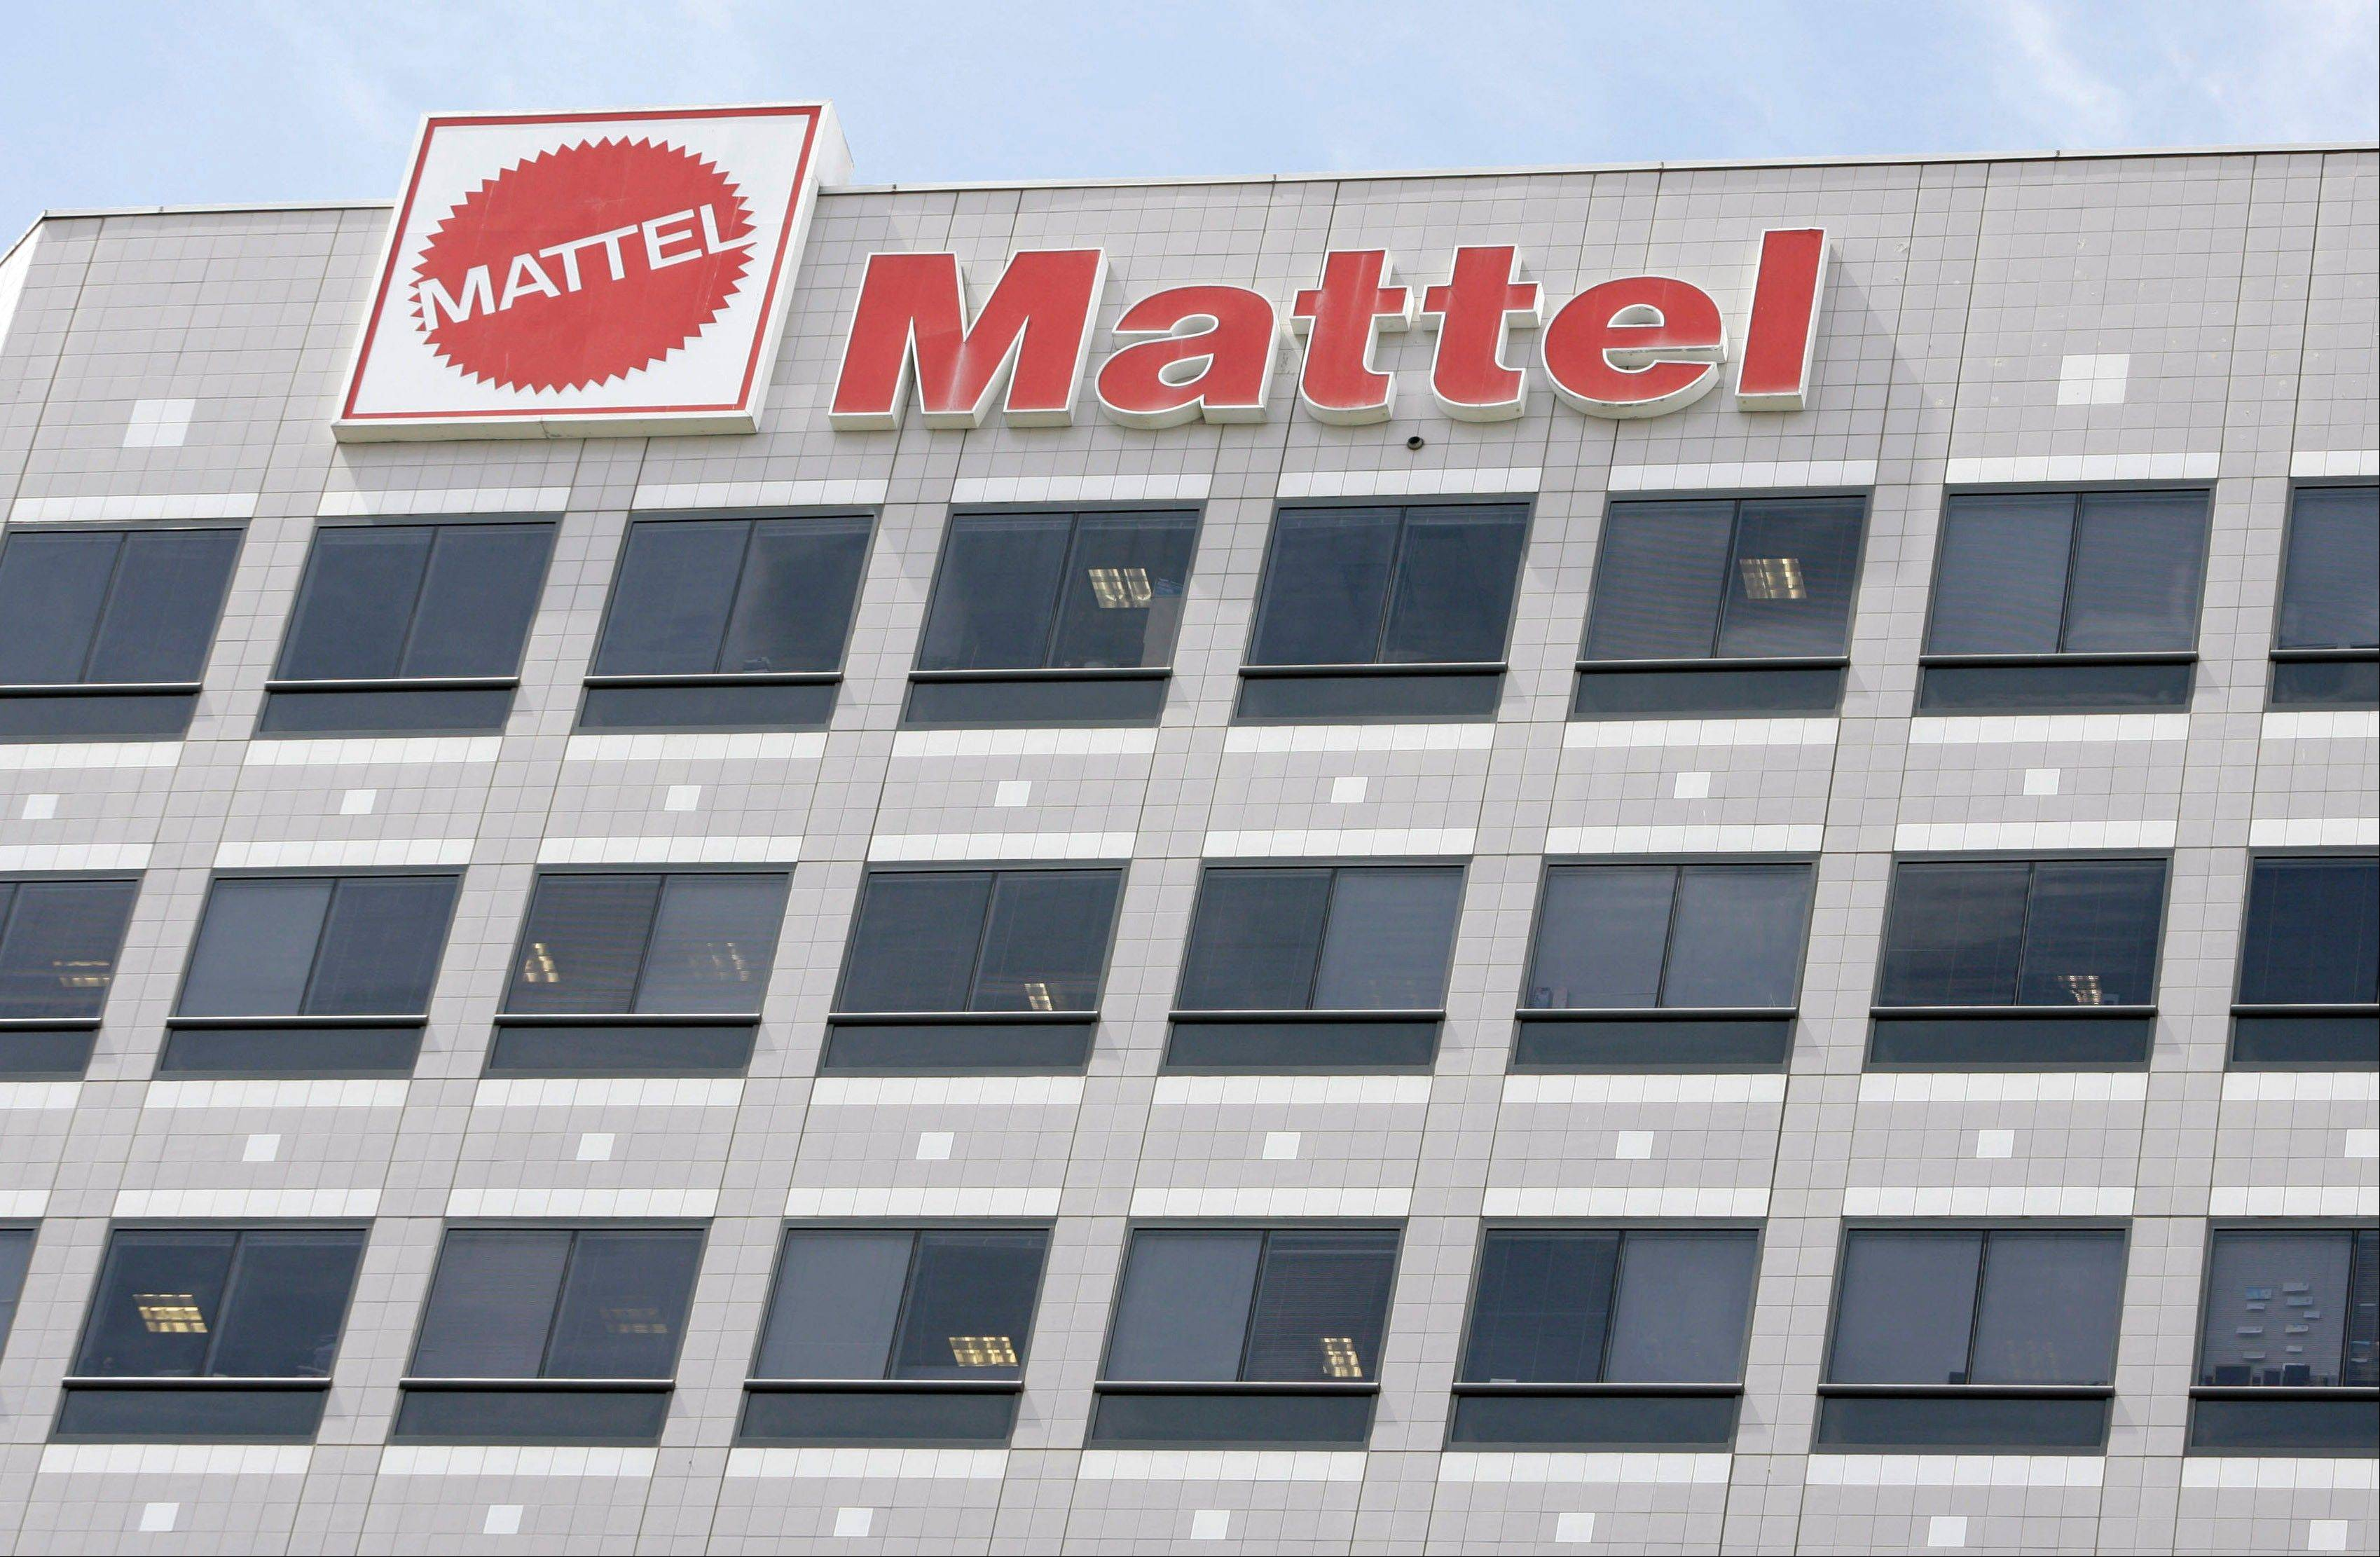 Barbie maker Mattel Inc.'s fourth-quarter net income fell 17 percent, weighed down by a litigation charge. Its performance missed Wall Street's expectations for the critical holiday period.